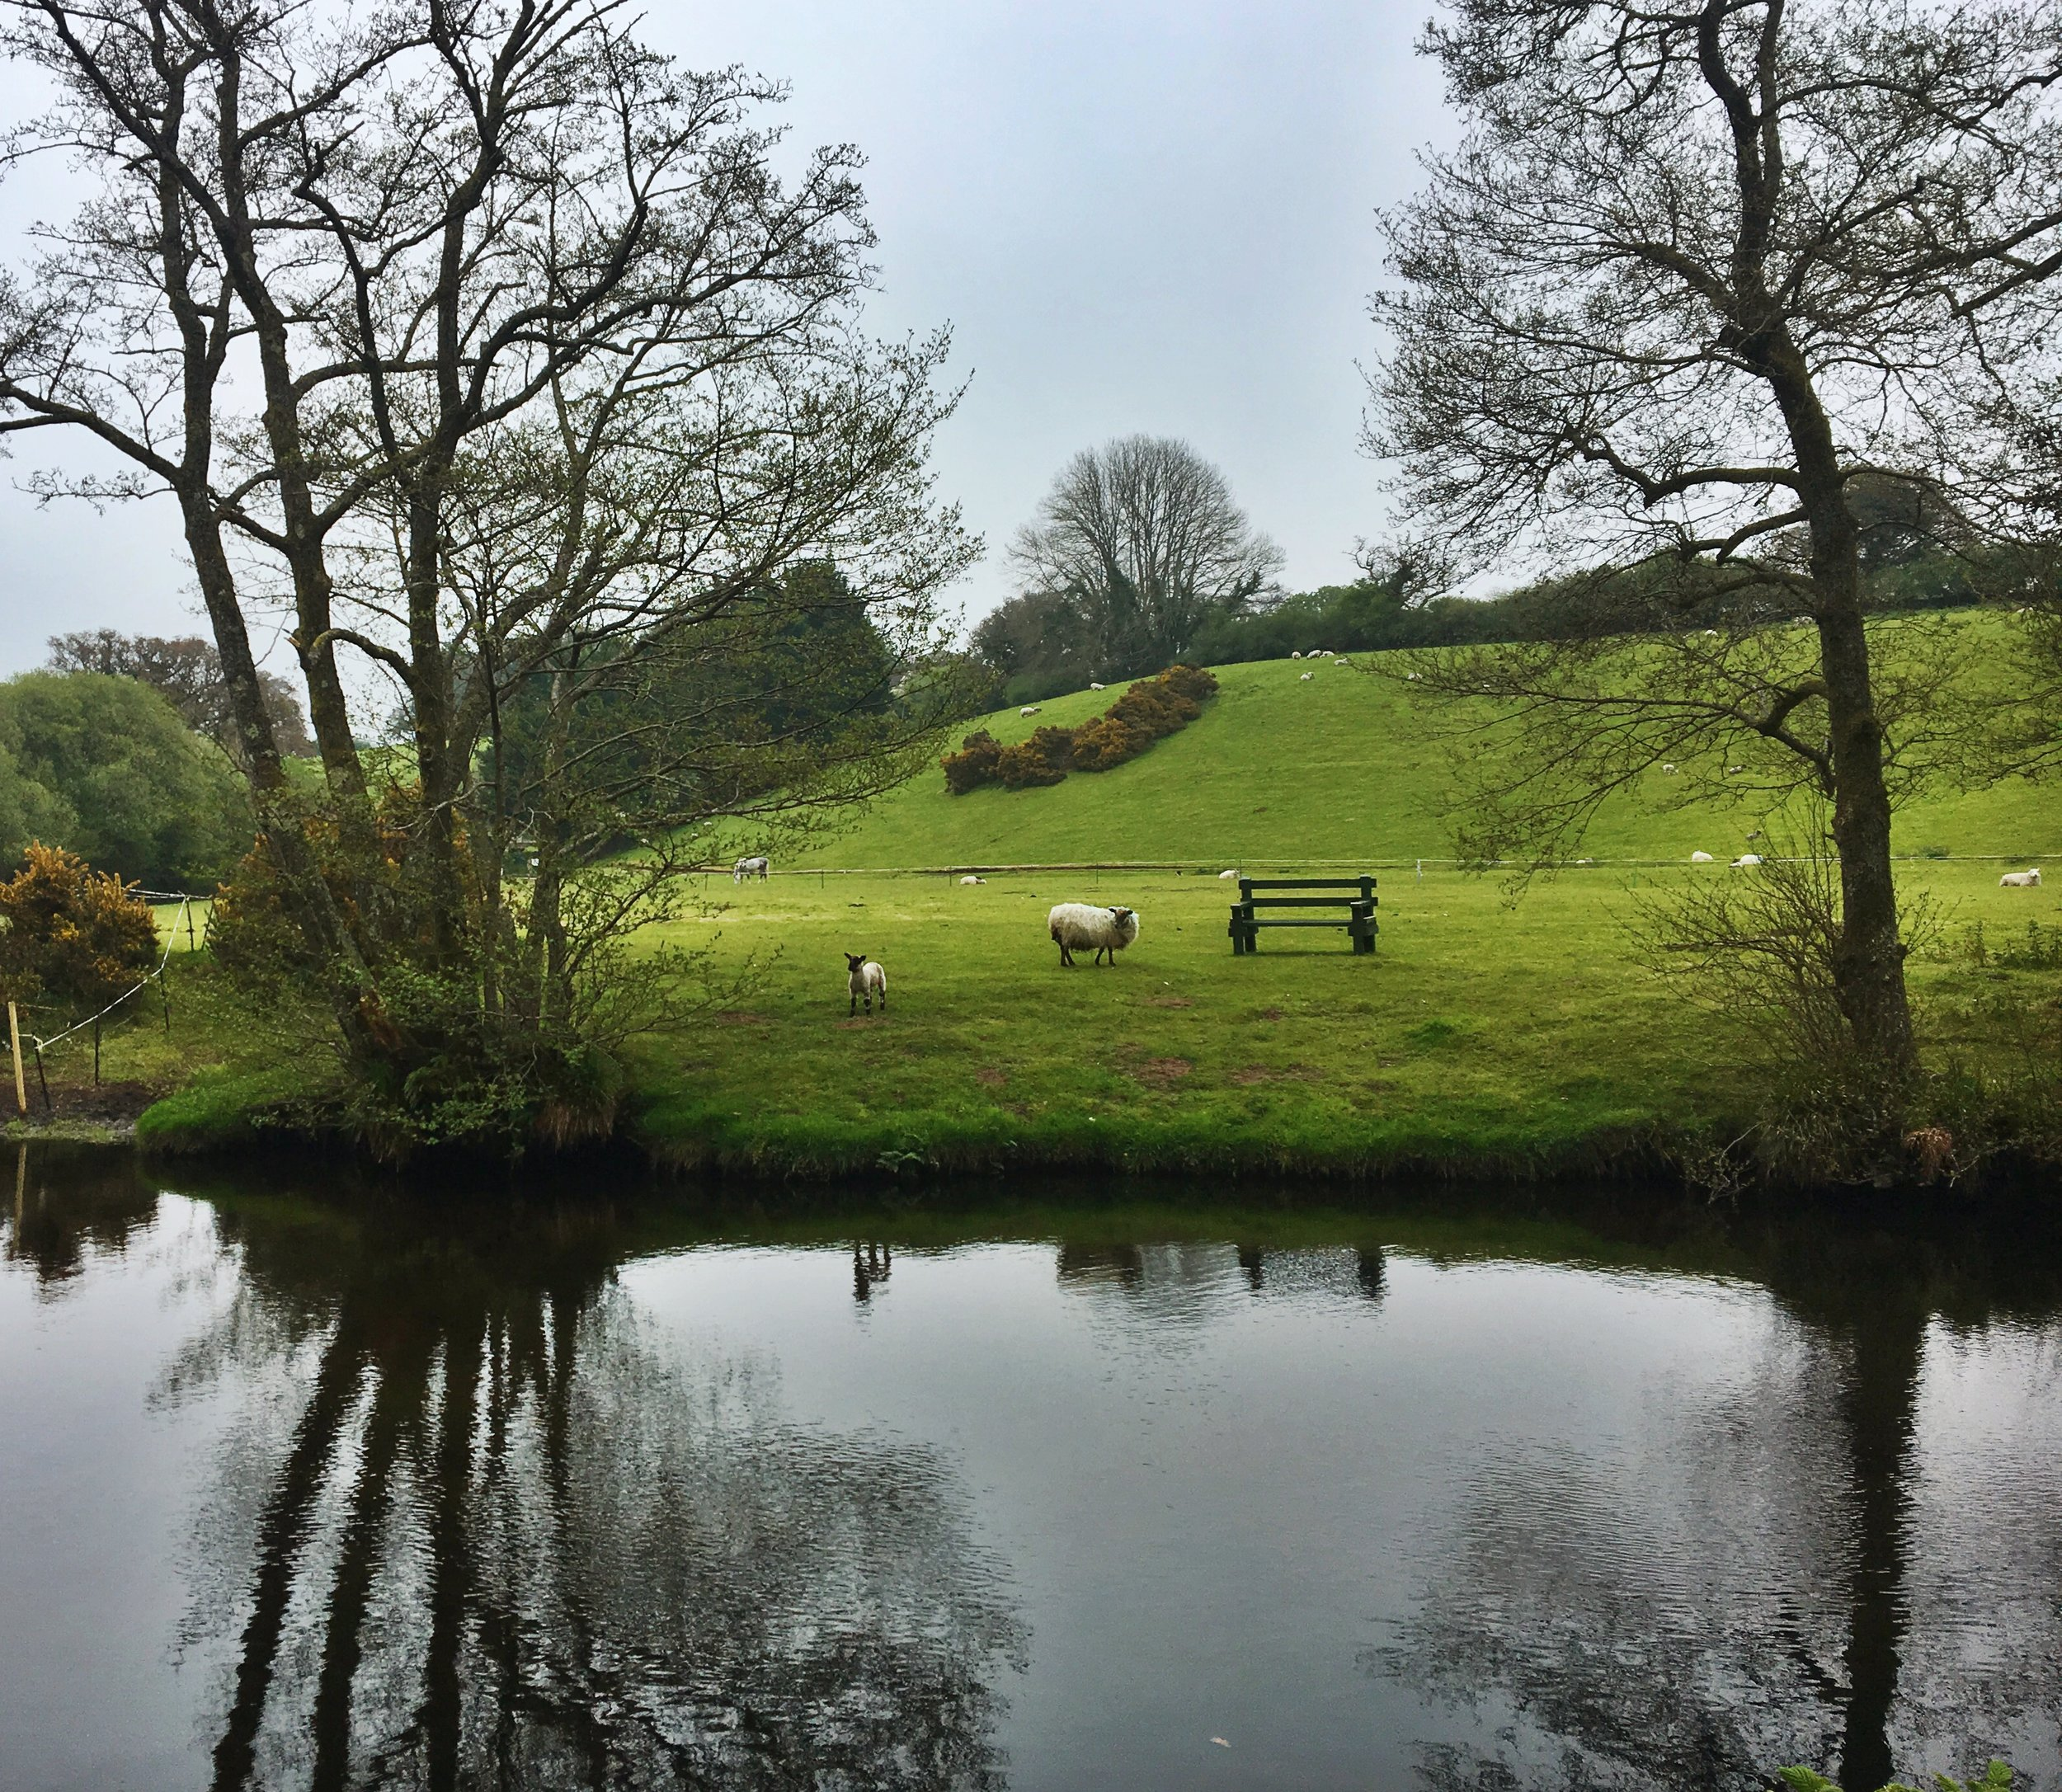 Hello! Lambs across the river near Chagford, May 2017